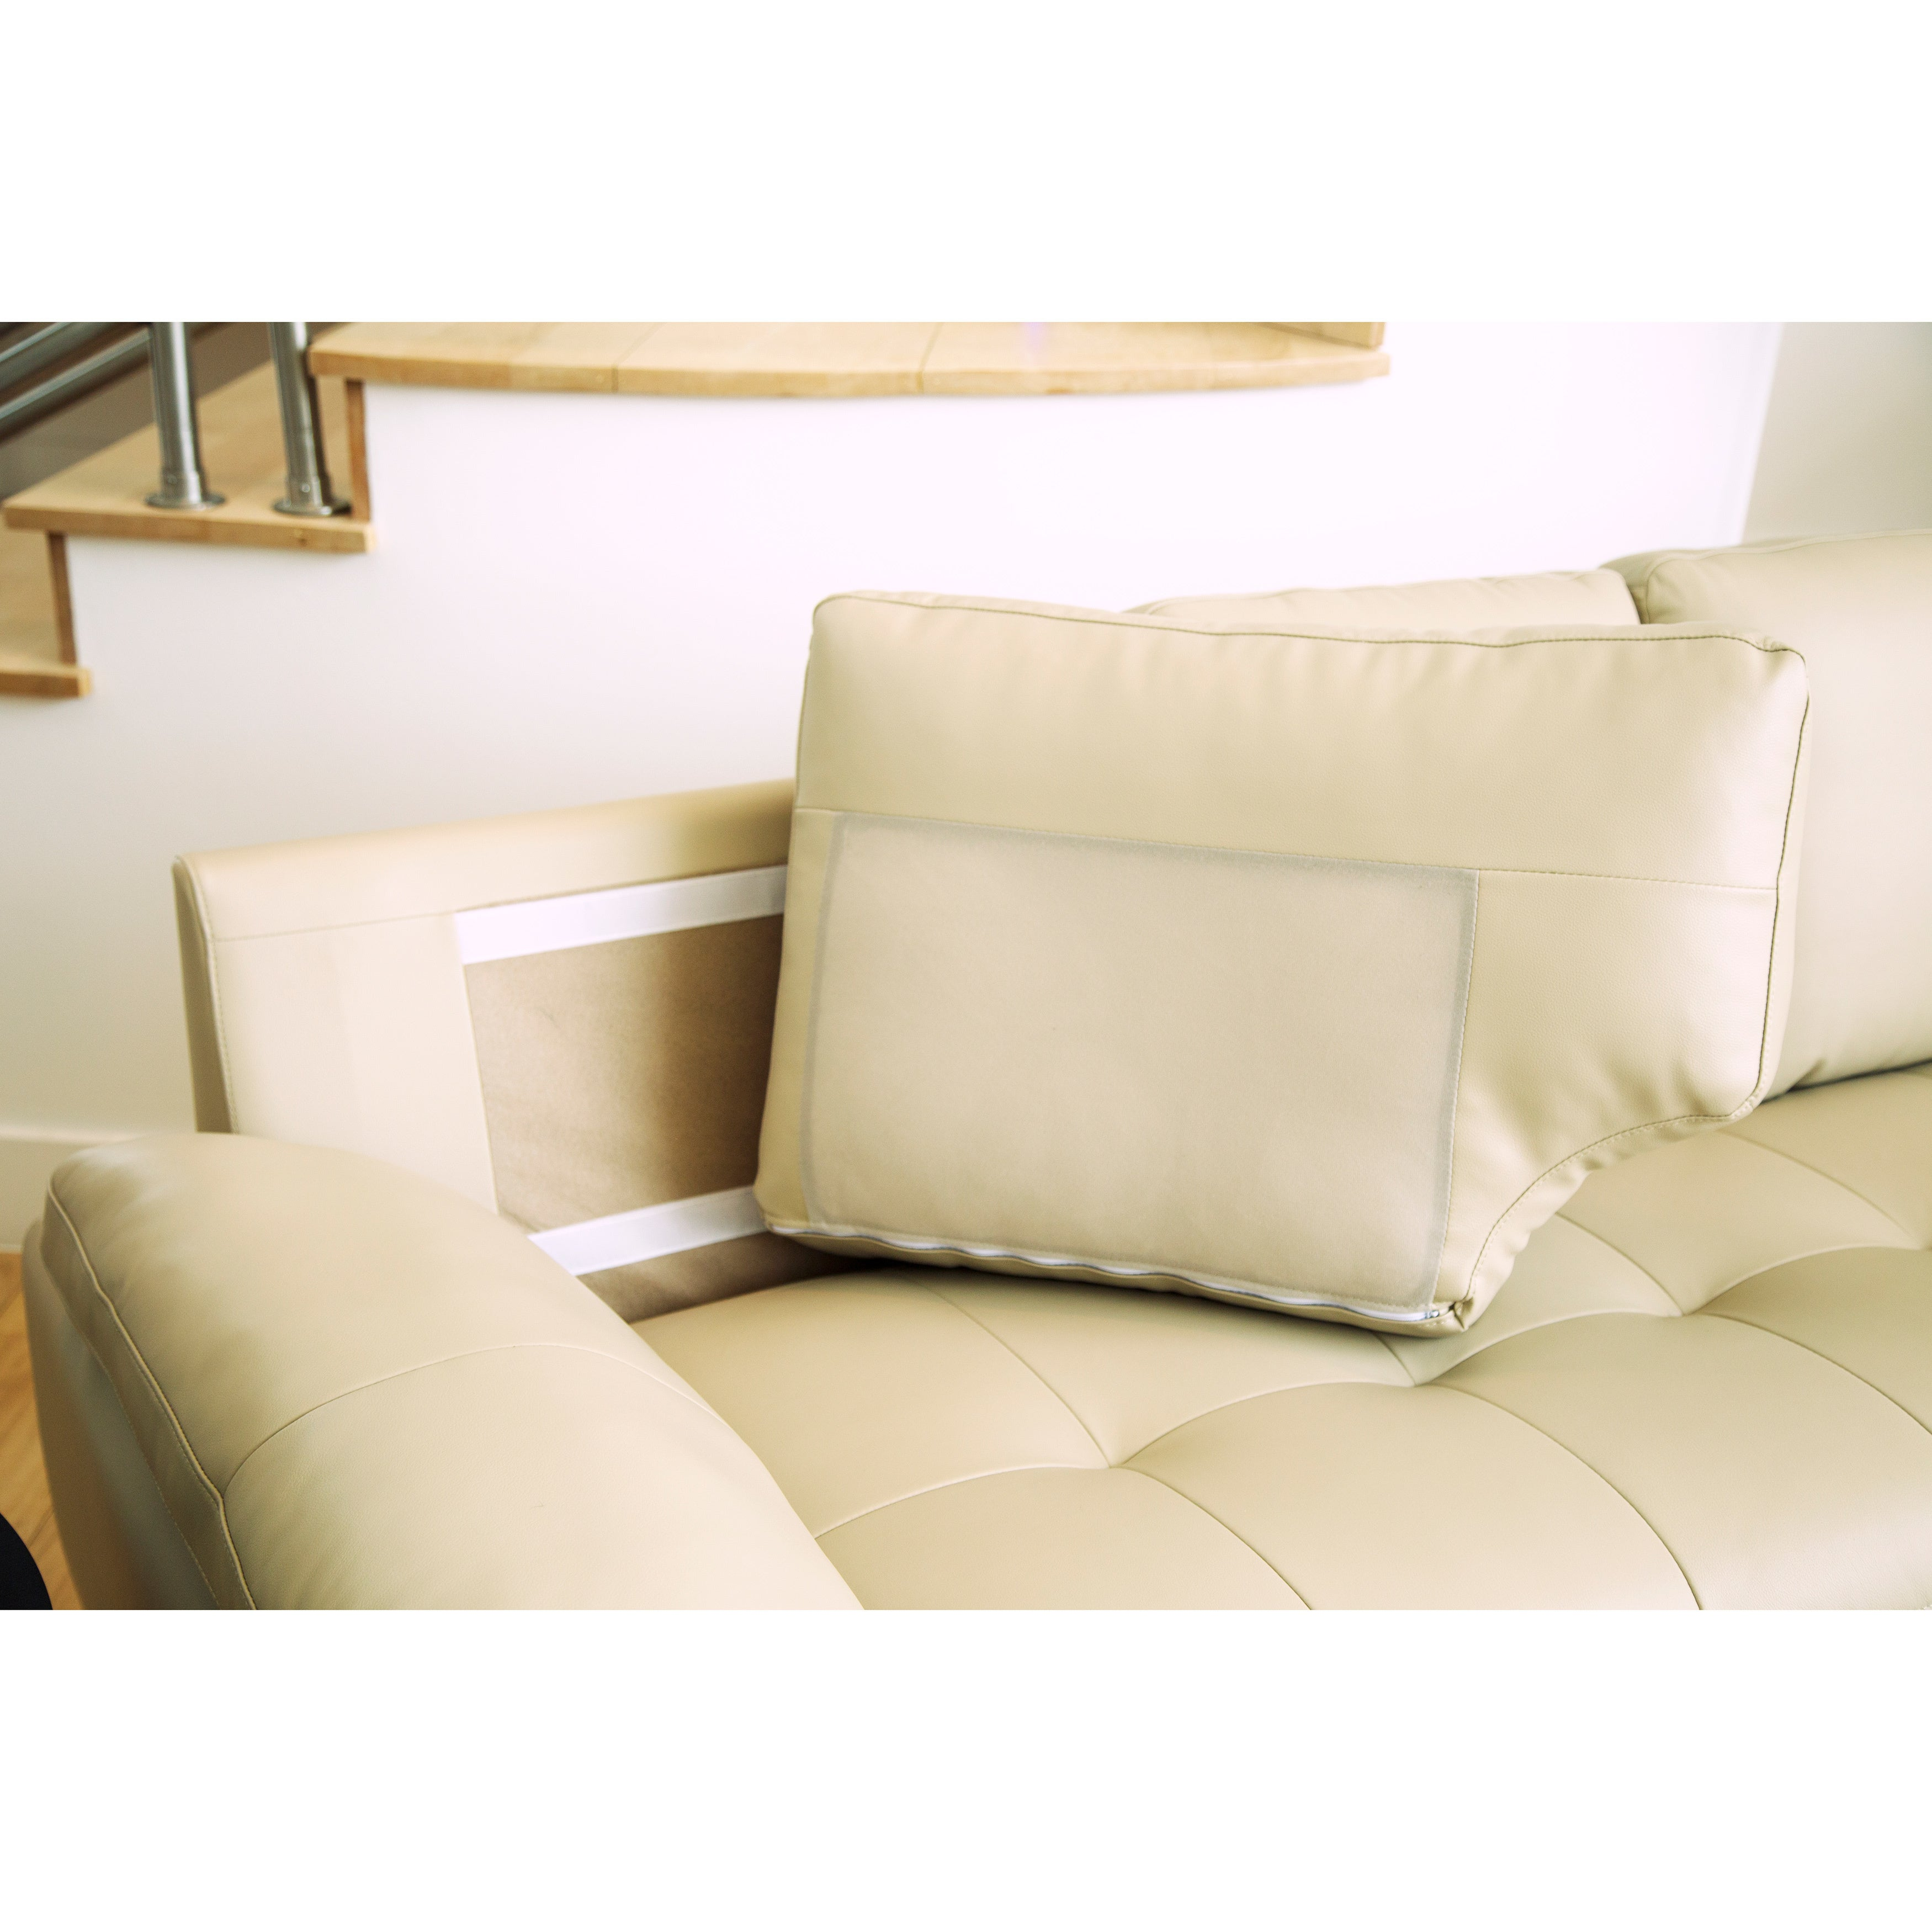 tufted set curved sofas and couches custom ideas best design unique leather sofa sectional luxury of